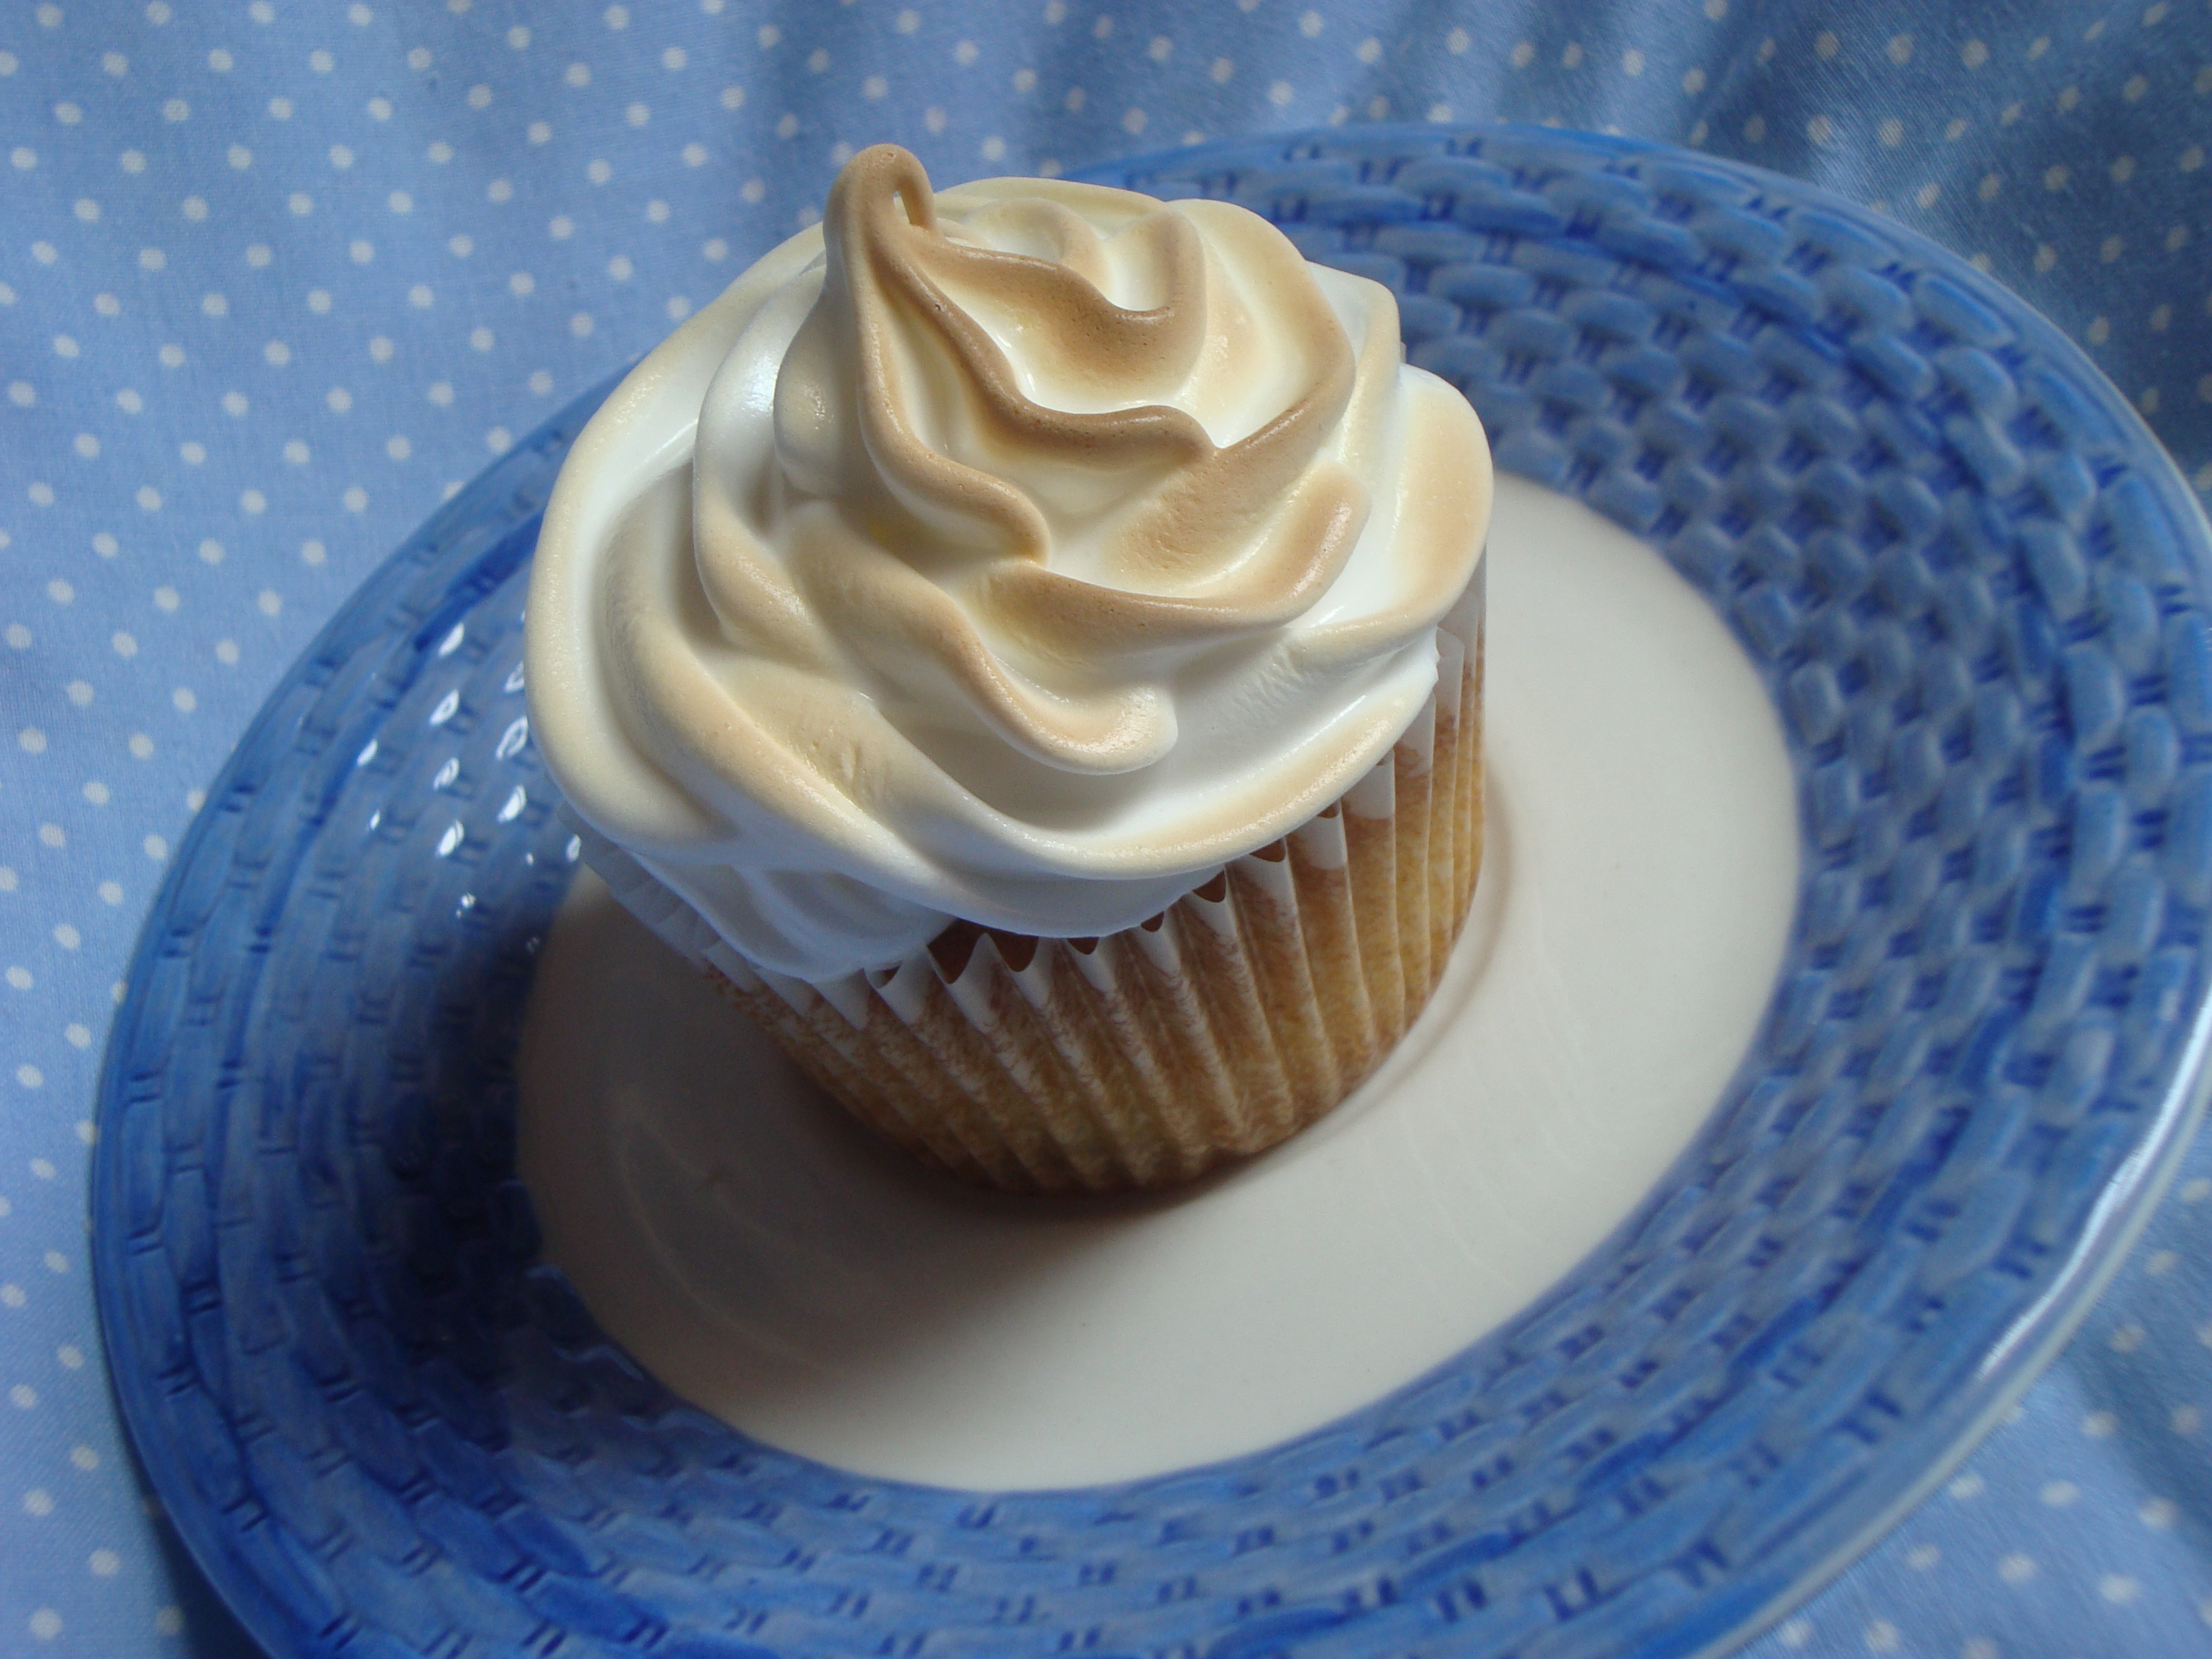 May Bake It! Recipe – Lemon Meringue Cupcakes | Cooking ...